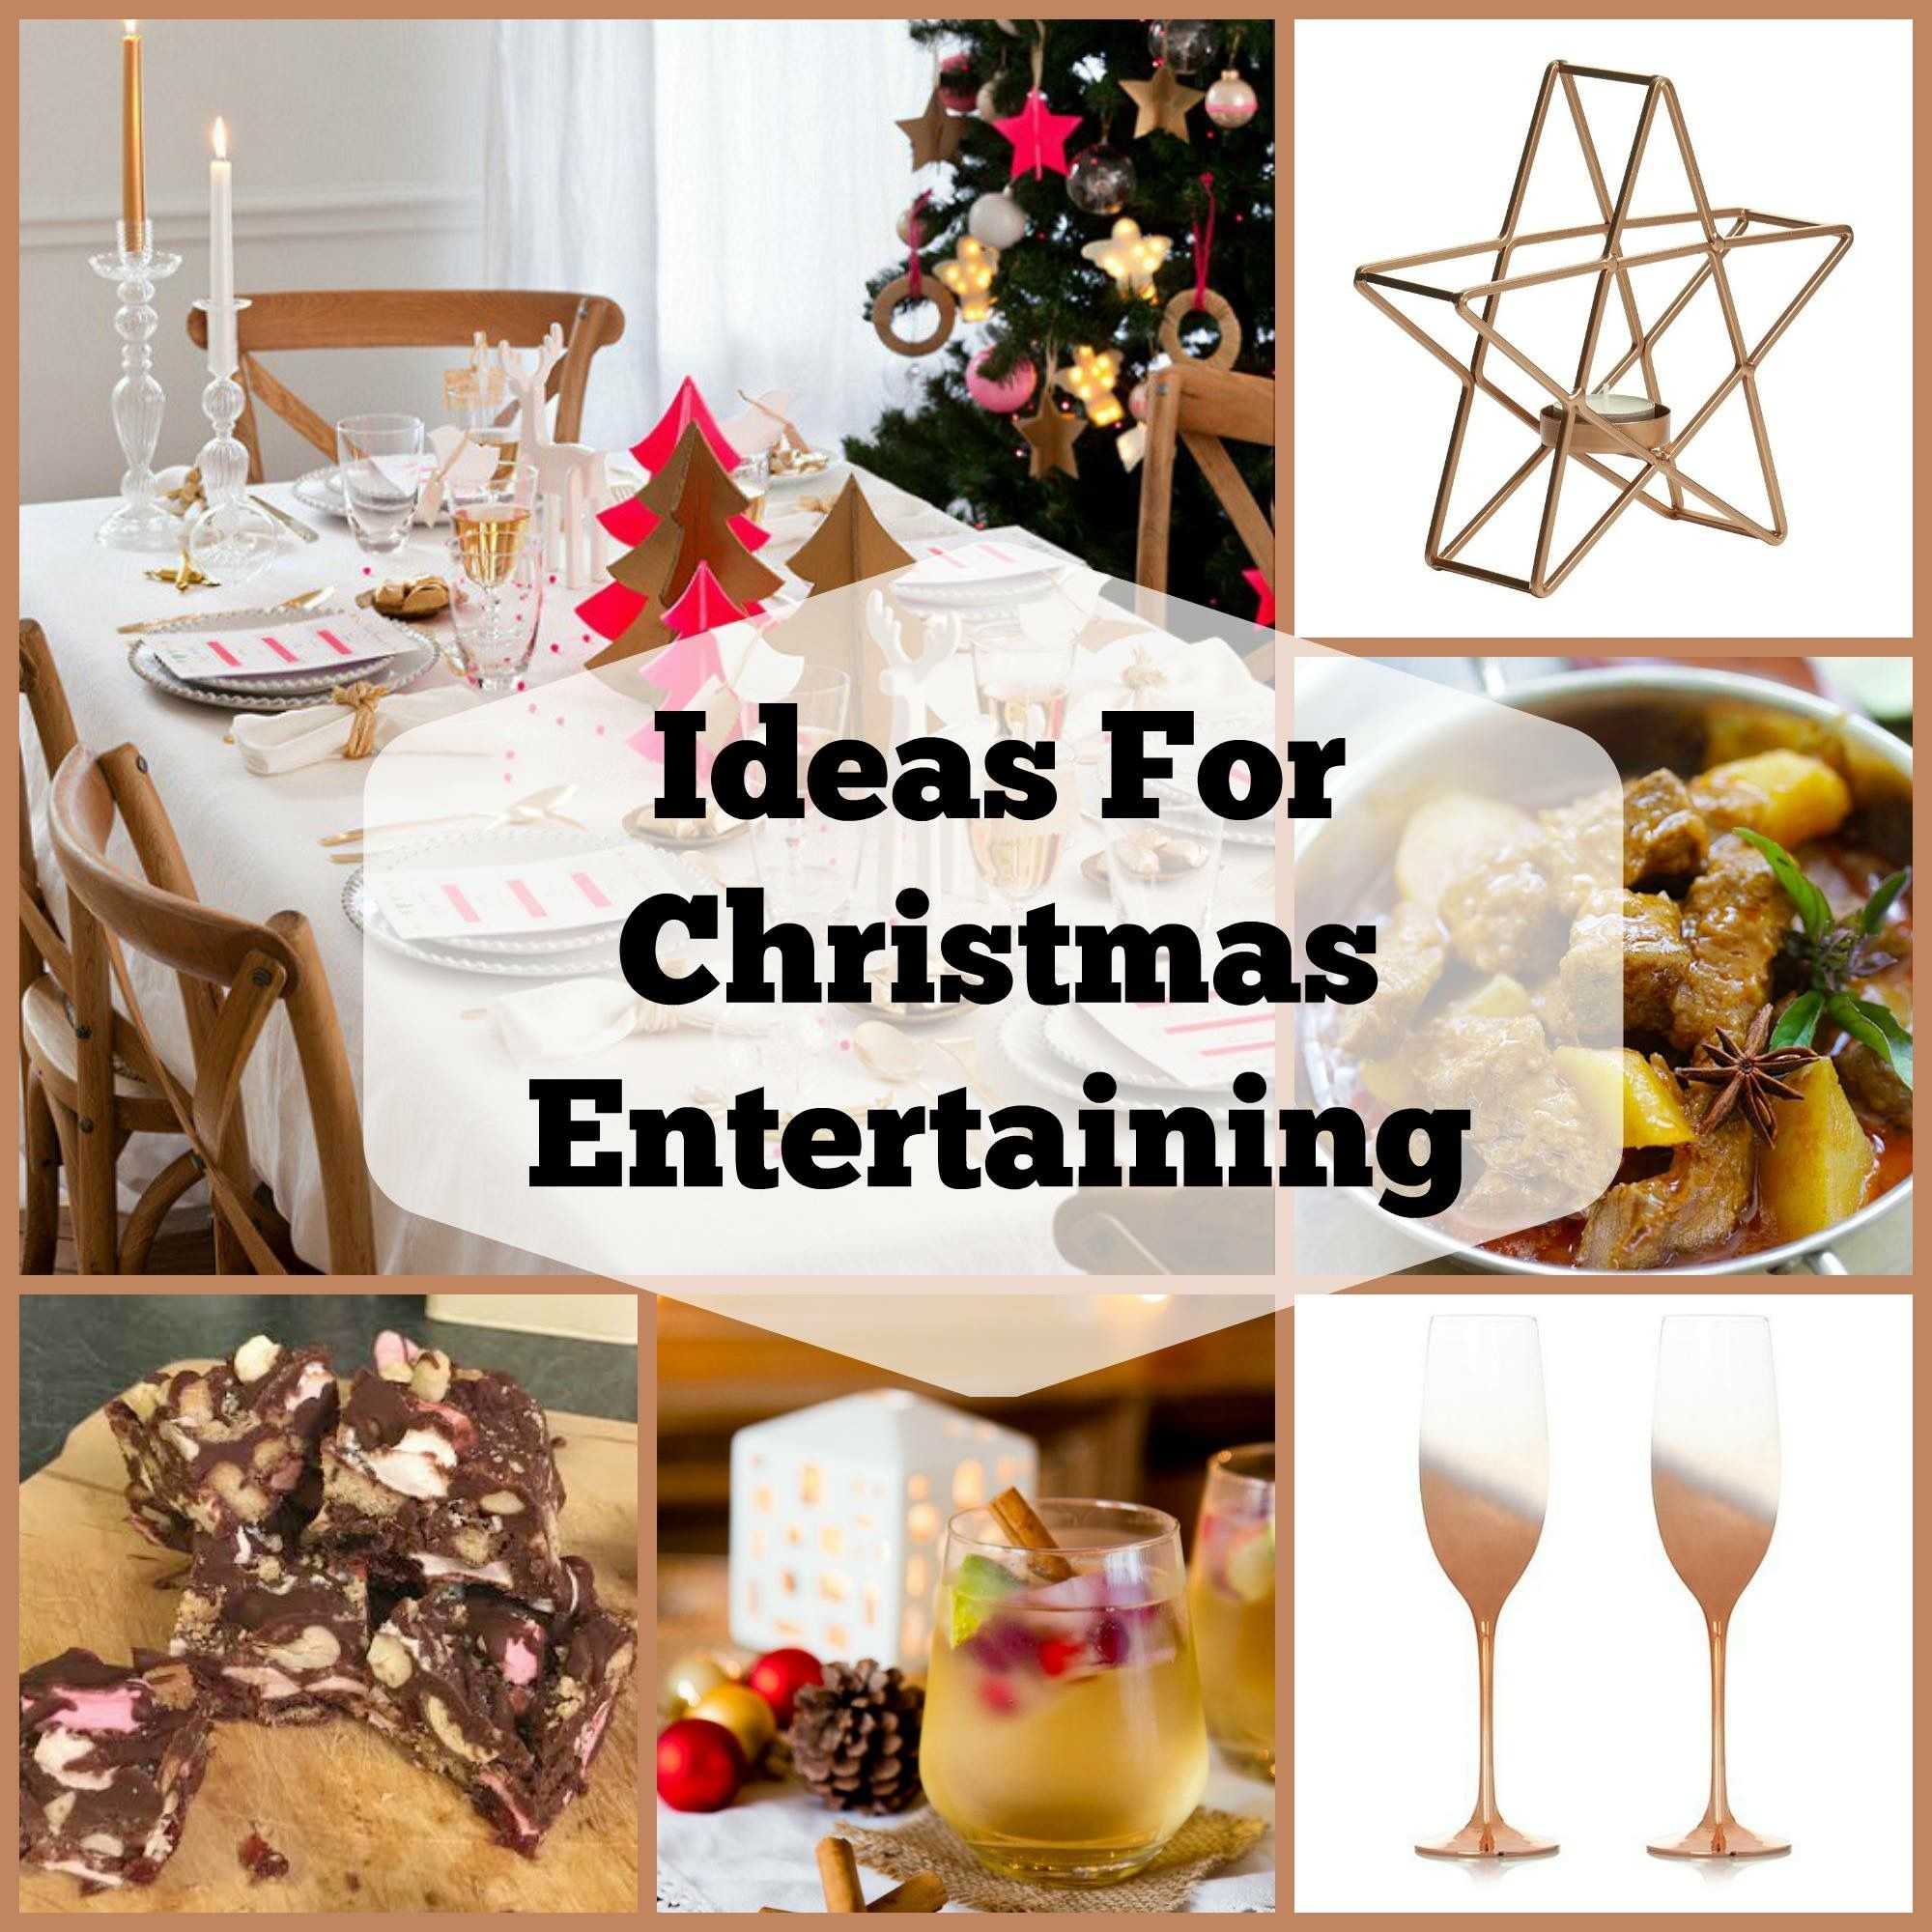 tips & ideas for christmas entertaining - recipes, homemade gifts